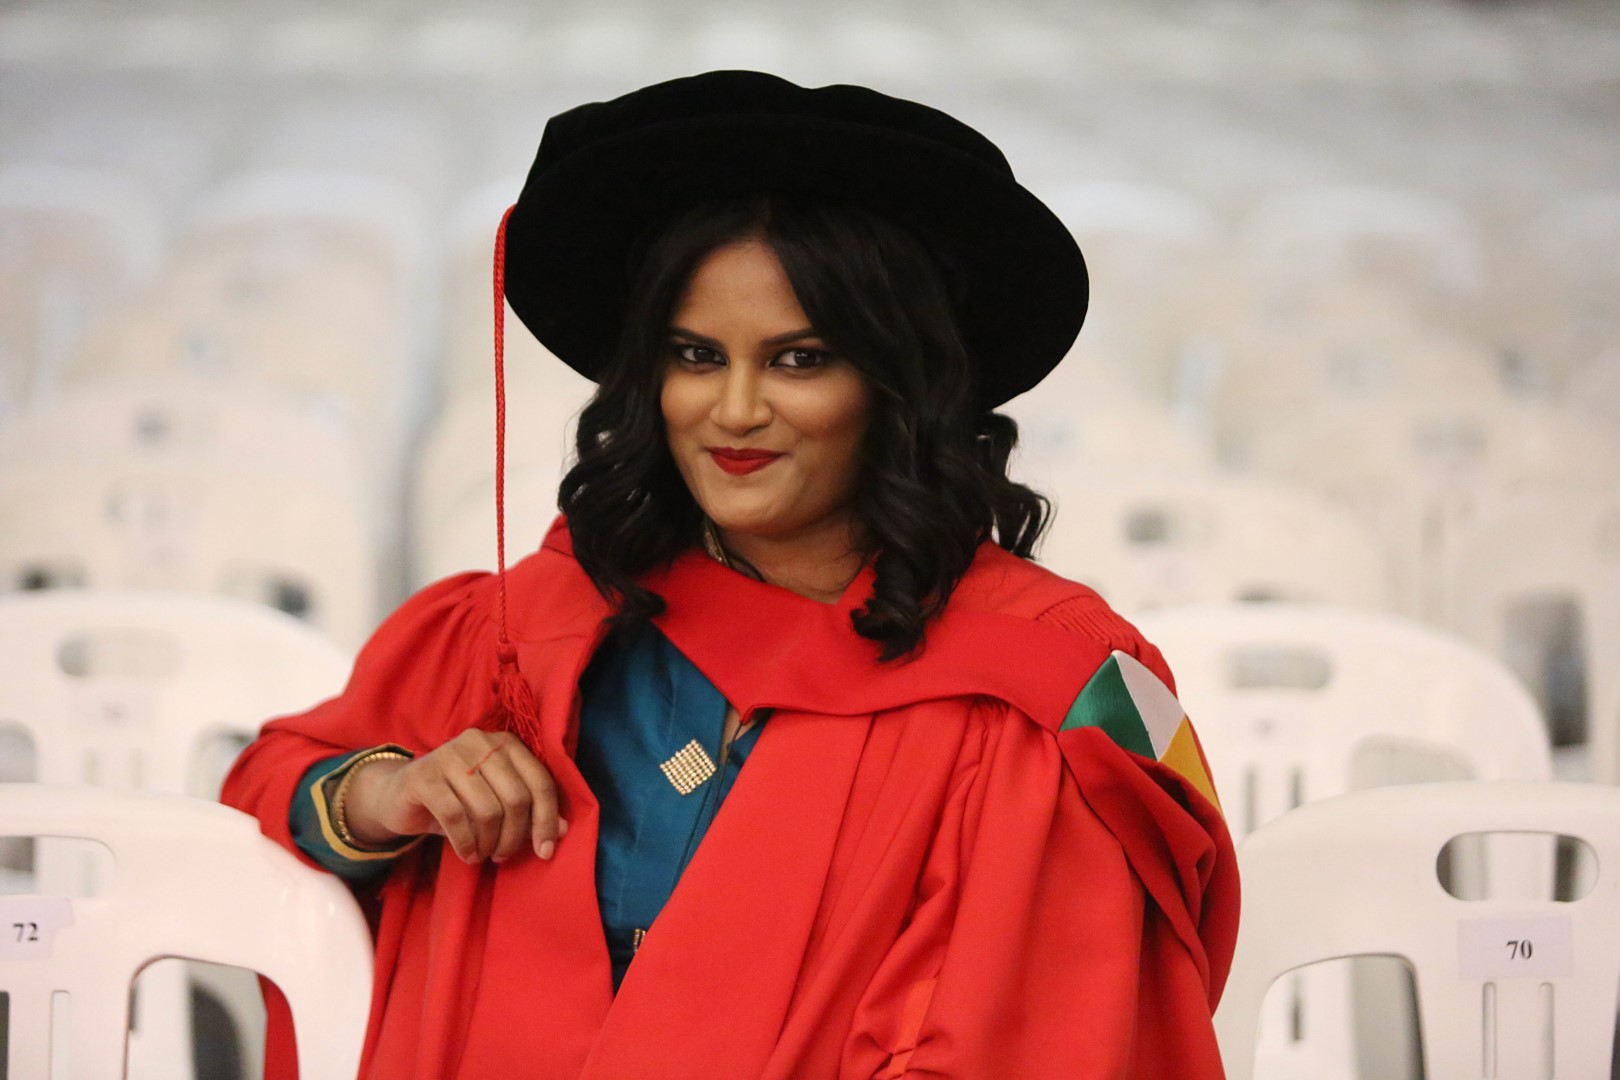 Dr Shaaista Moosa graduates with her PhD in Education from UKZN